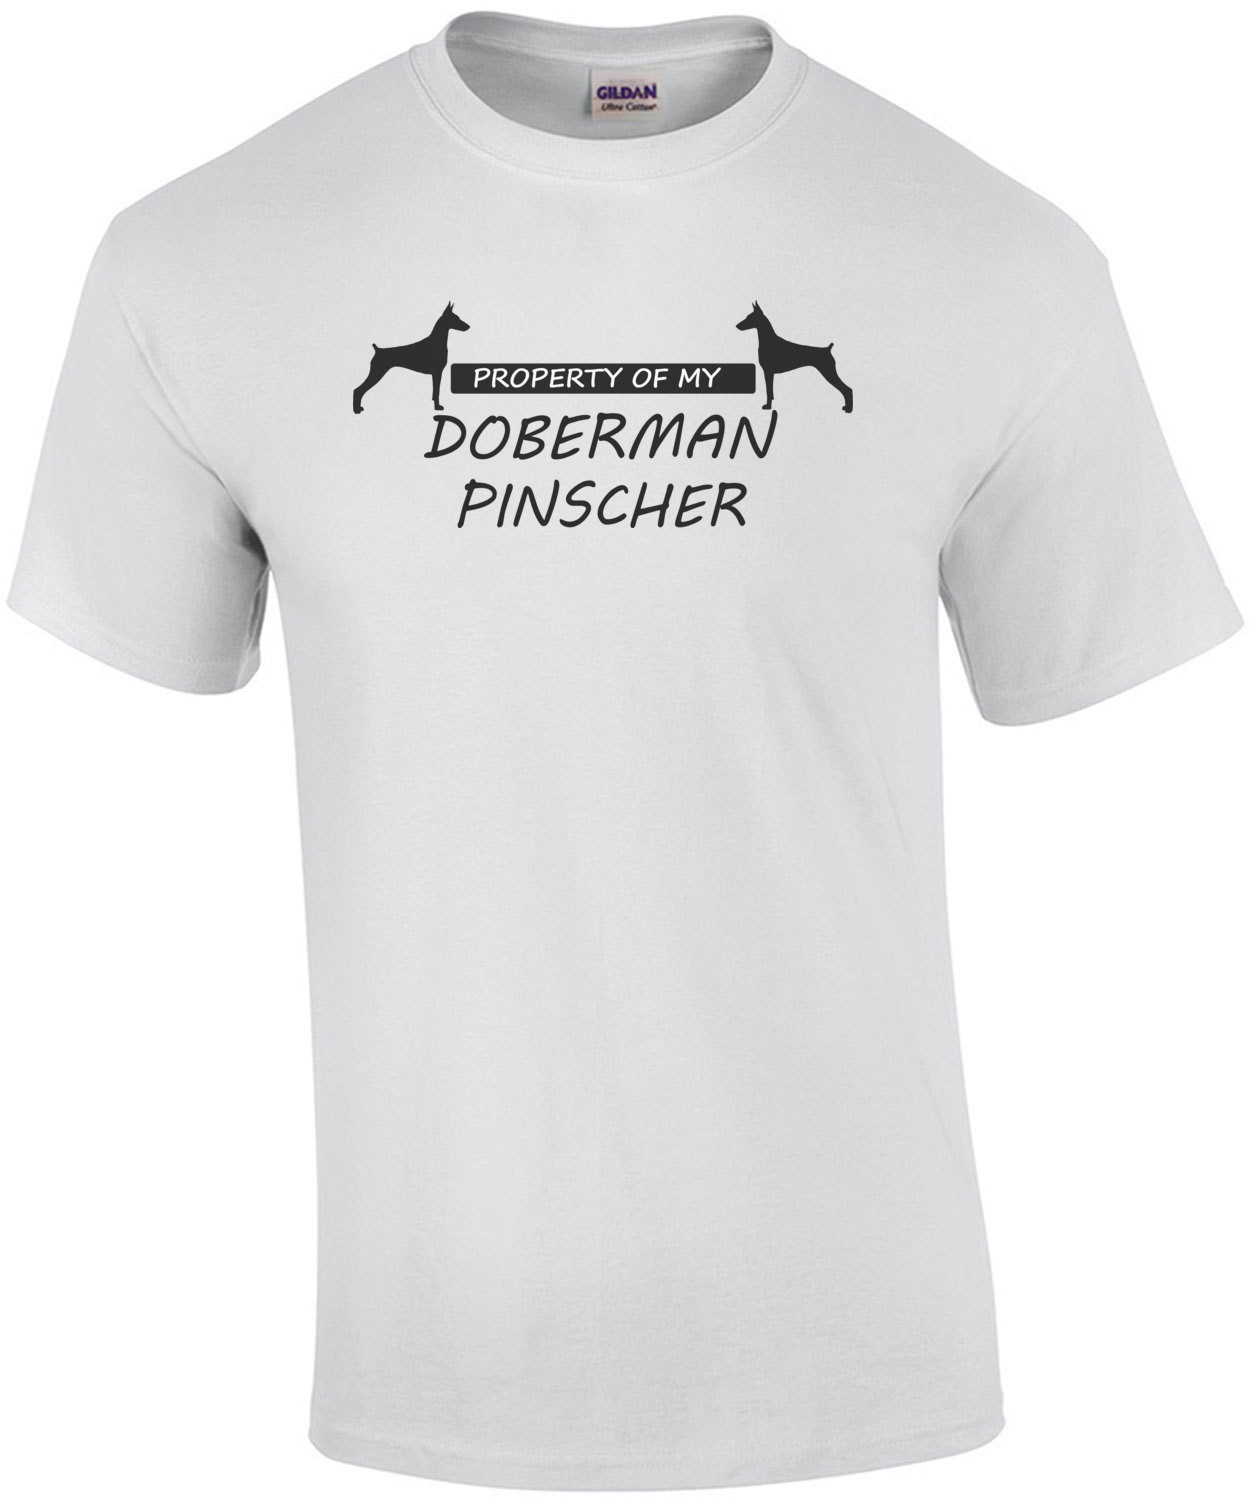 Property of my Doberman Pinscher - Doberman Pinscher T-Shirt